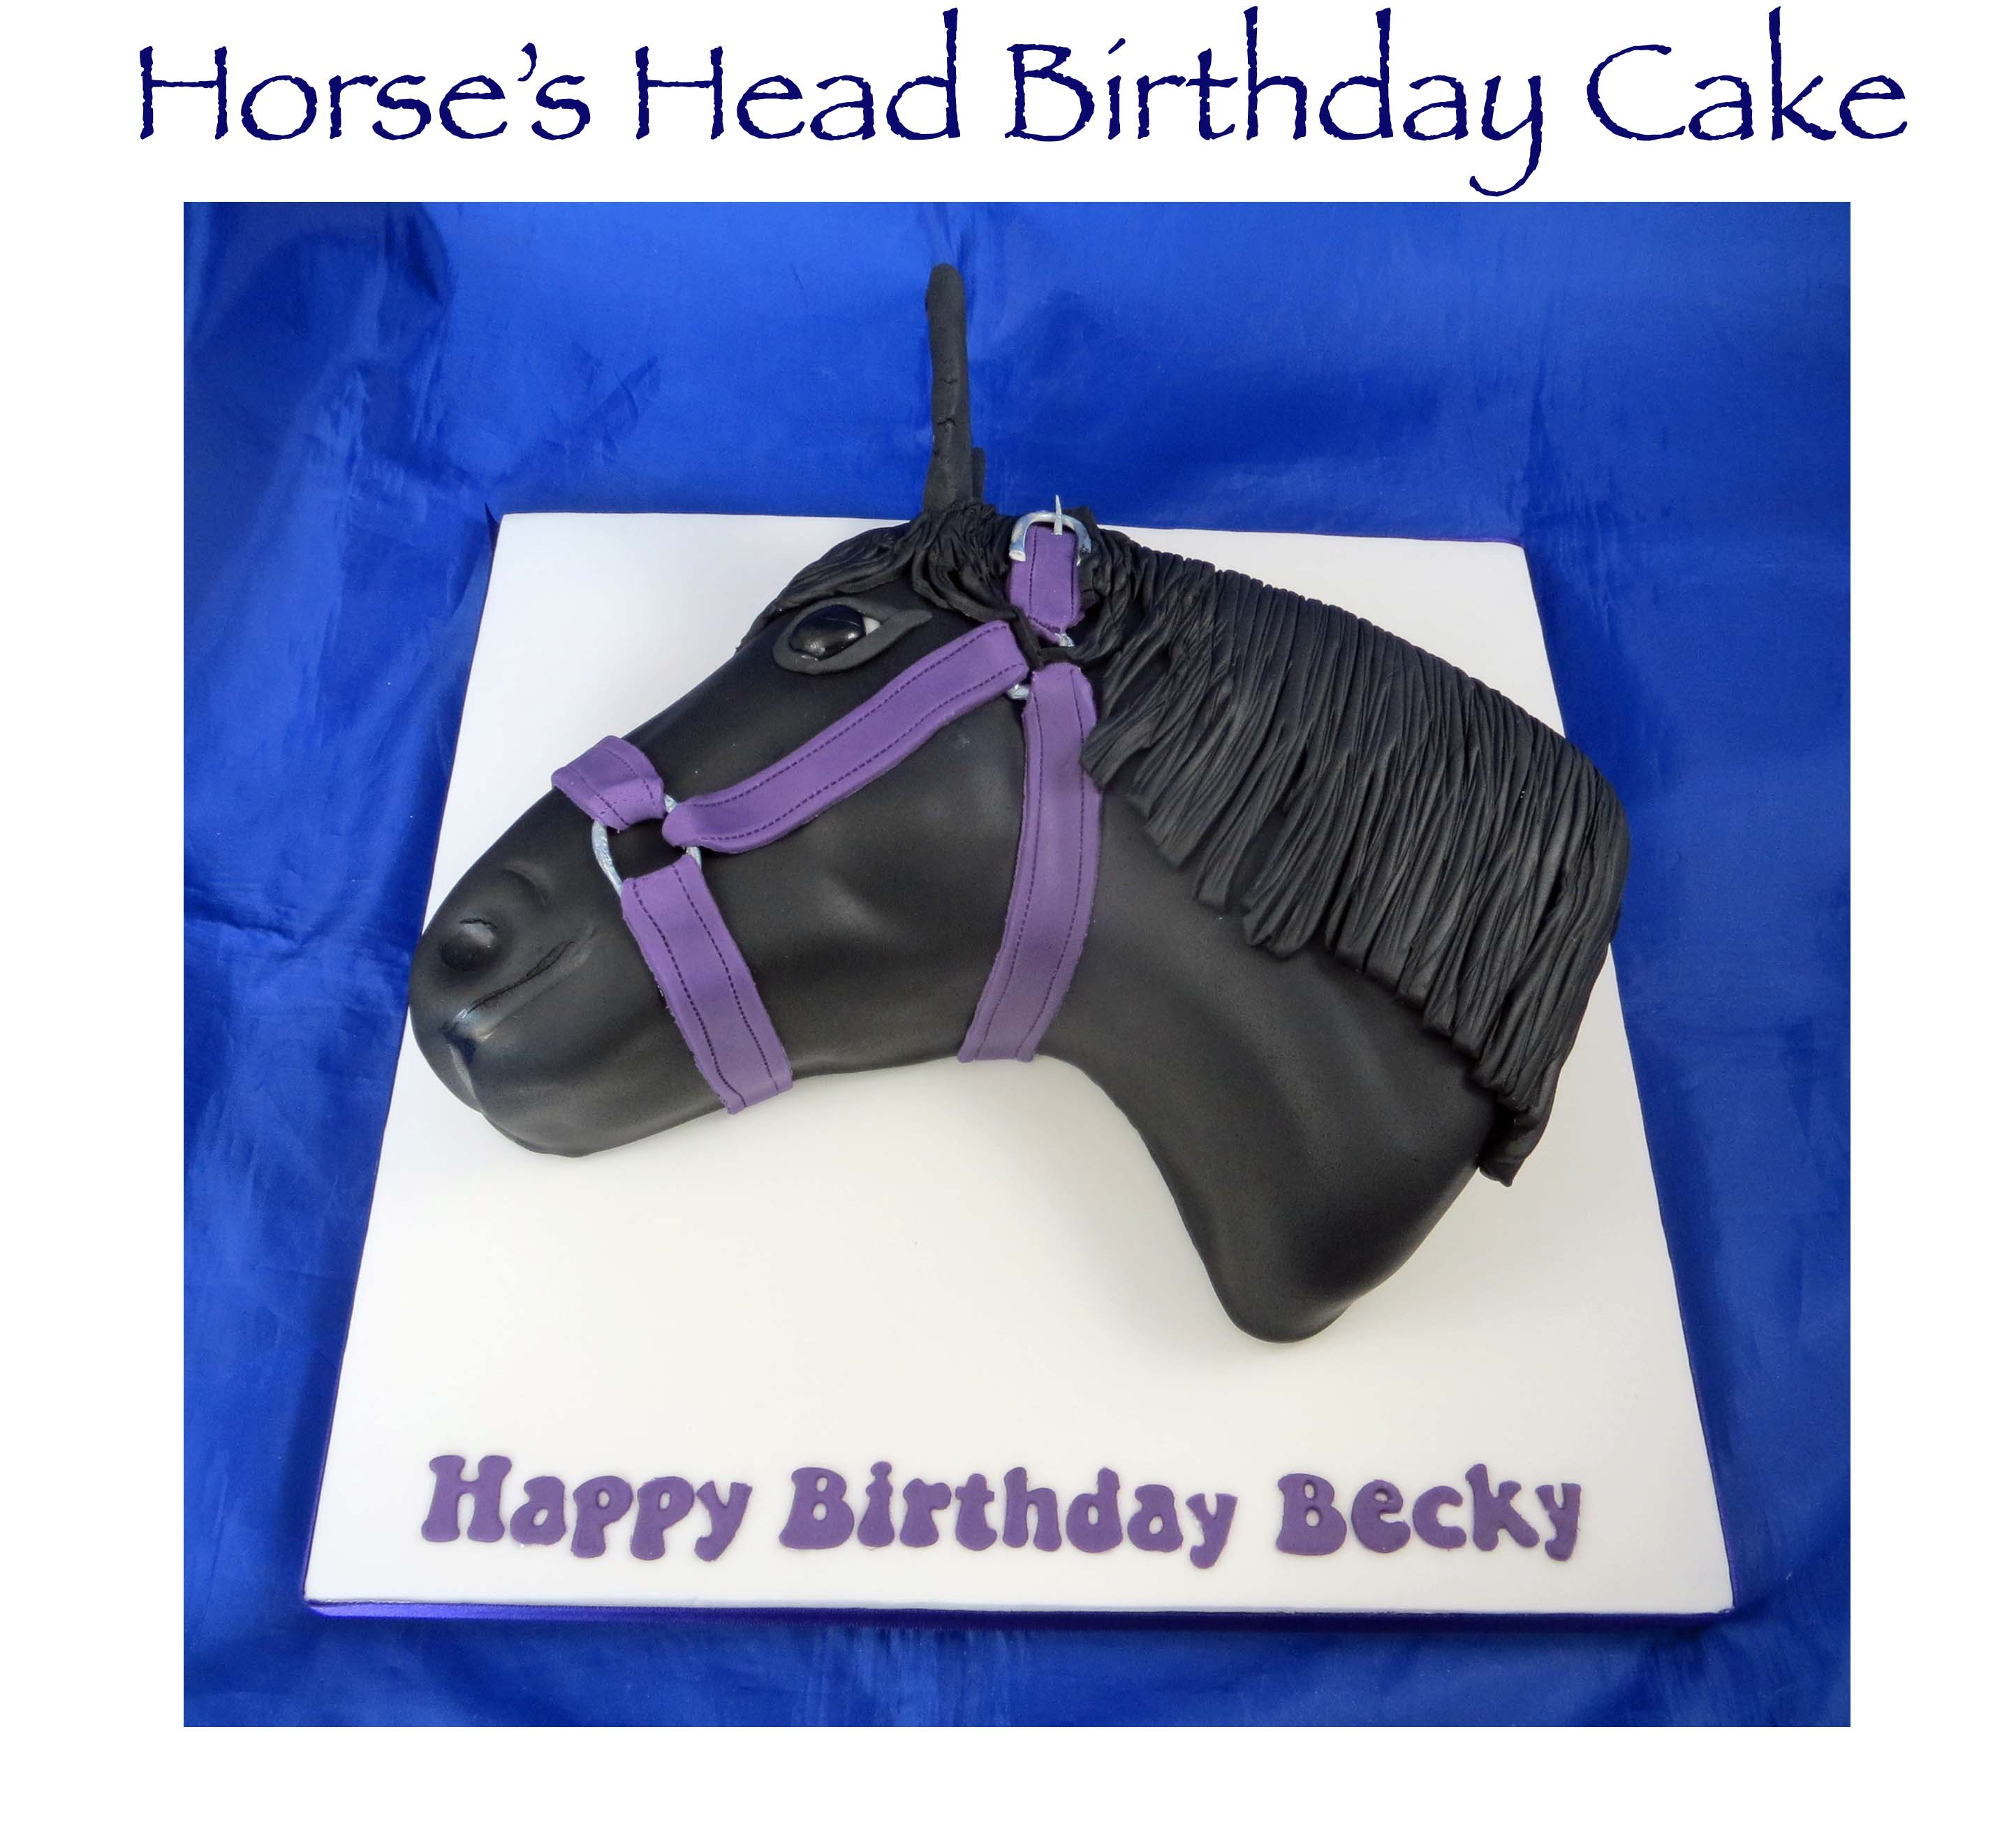 Horse's Head Birthday Cake